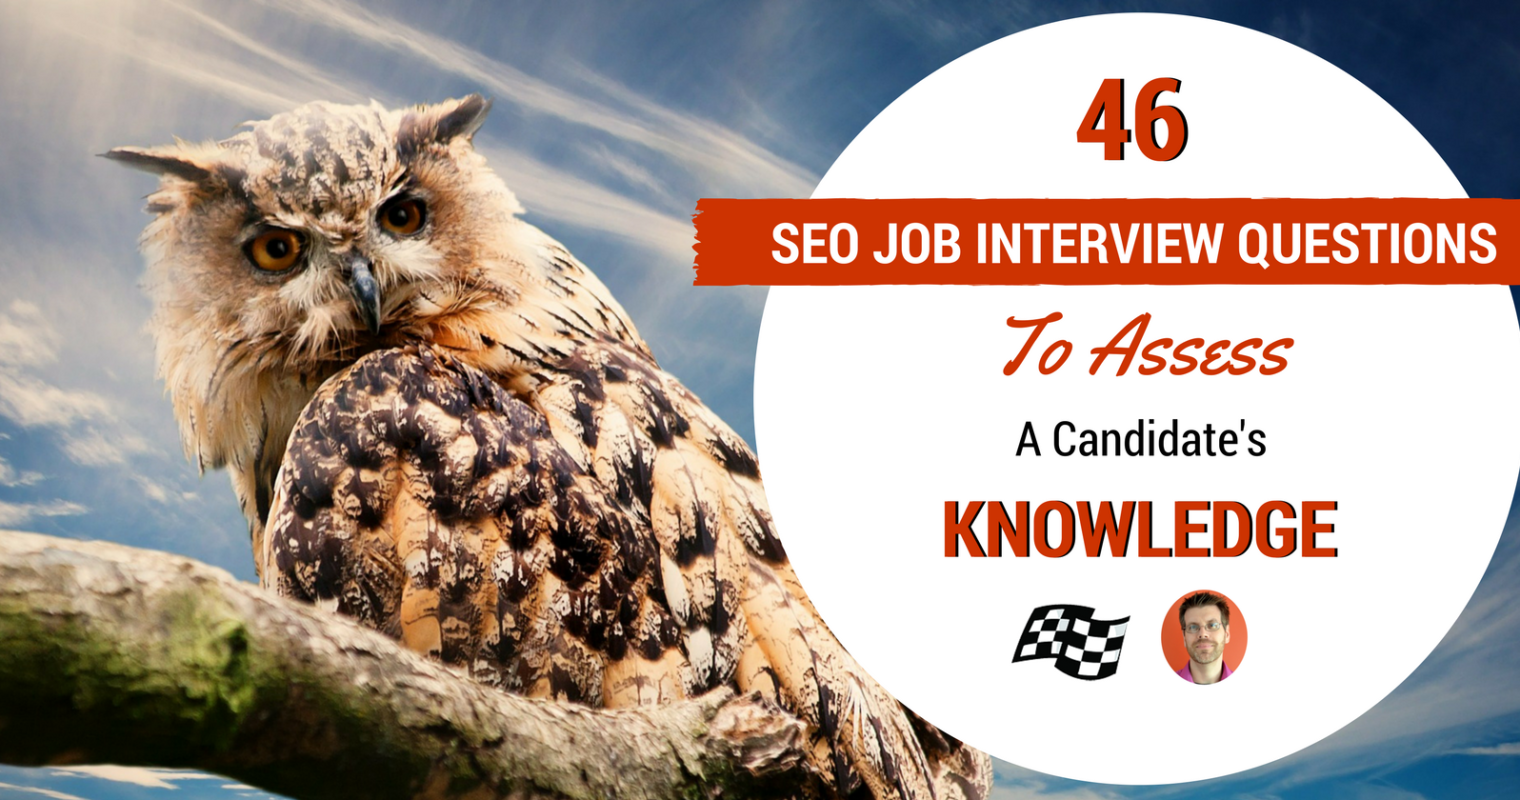 46 SEO Job Interview Questions to Assess a Candidate's Knowledge